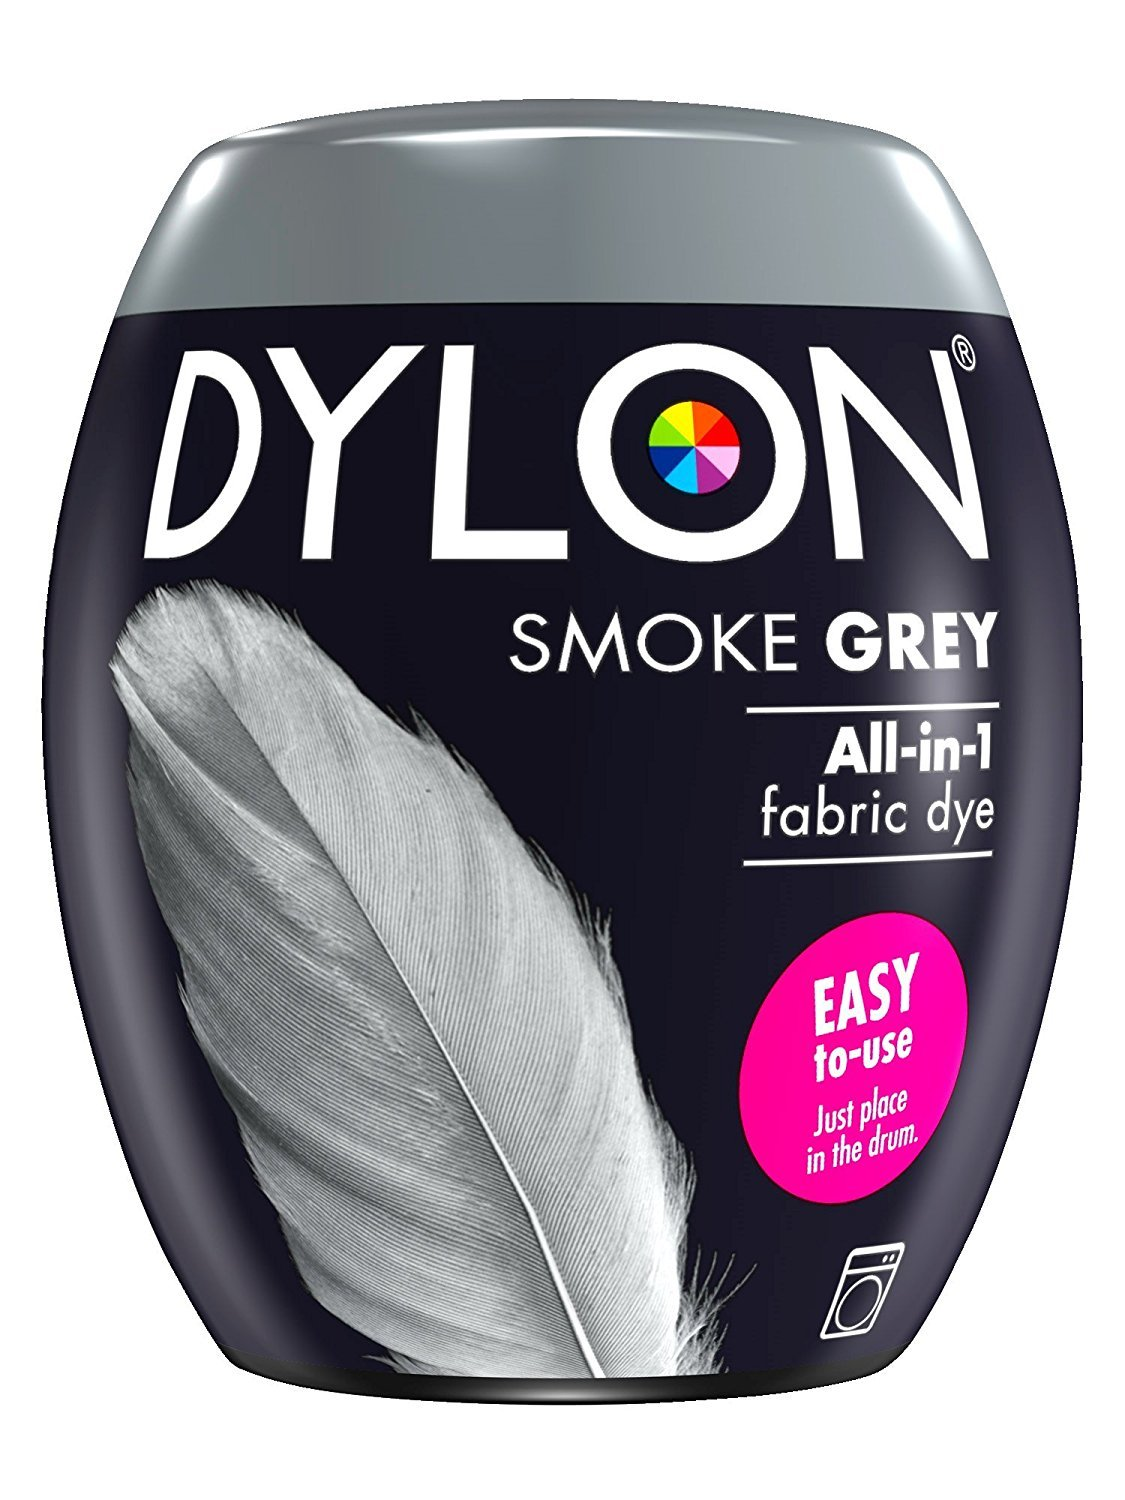 2 x Dylon Fabric Dye Clothes Dye Machine Use 350g Pod - Smoke Grey